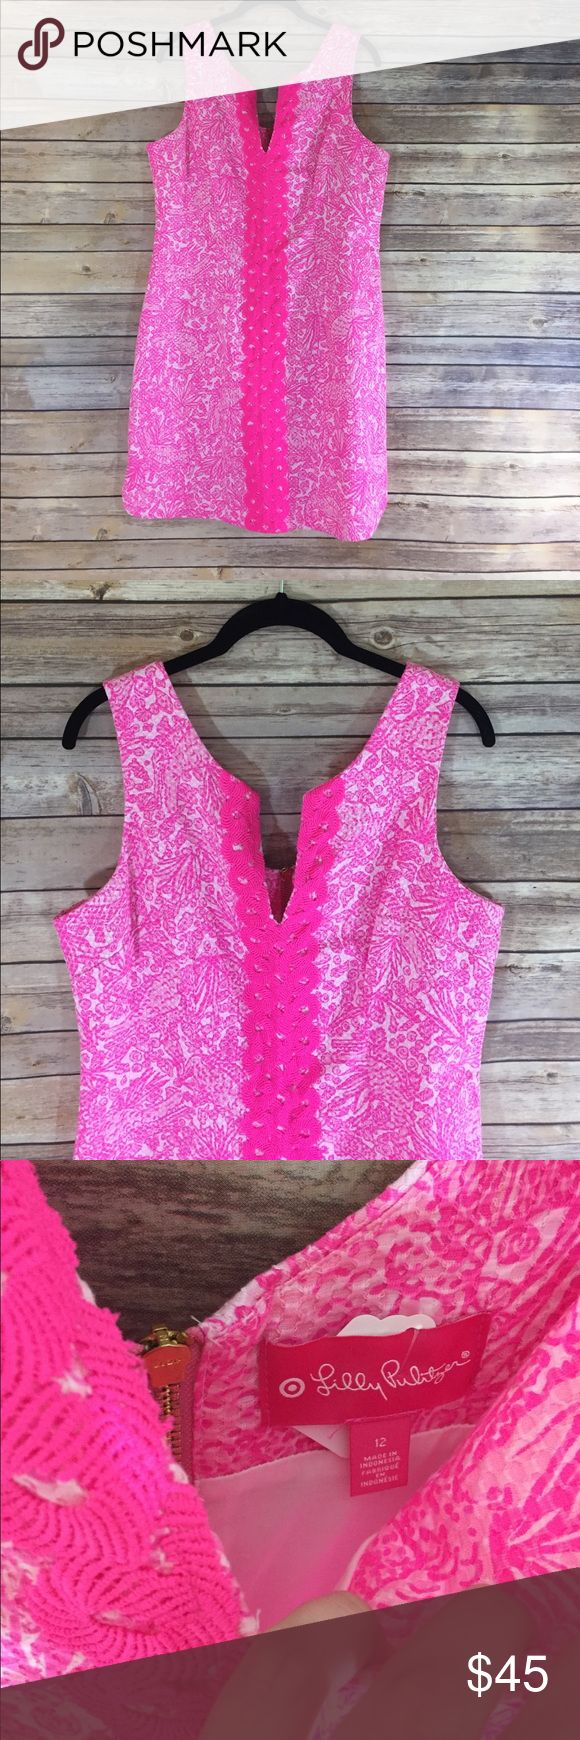 Lilly Pulitzer for Target Hot Pink Shift Dress Lilly Pulitzer for Target Hot Pink Shift Dress. Size 12. In great condition. Too cute! 18 inches pit to pit and 35 top to bottom. Lilly Pulitzer for Target Dresses